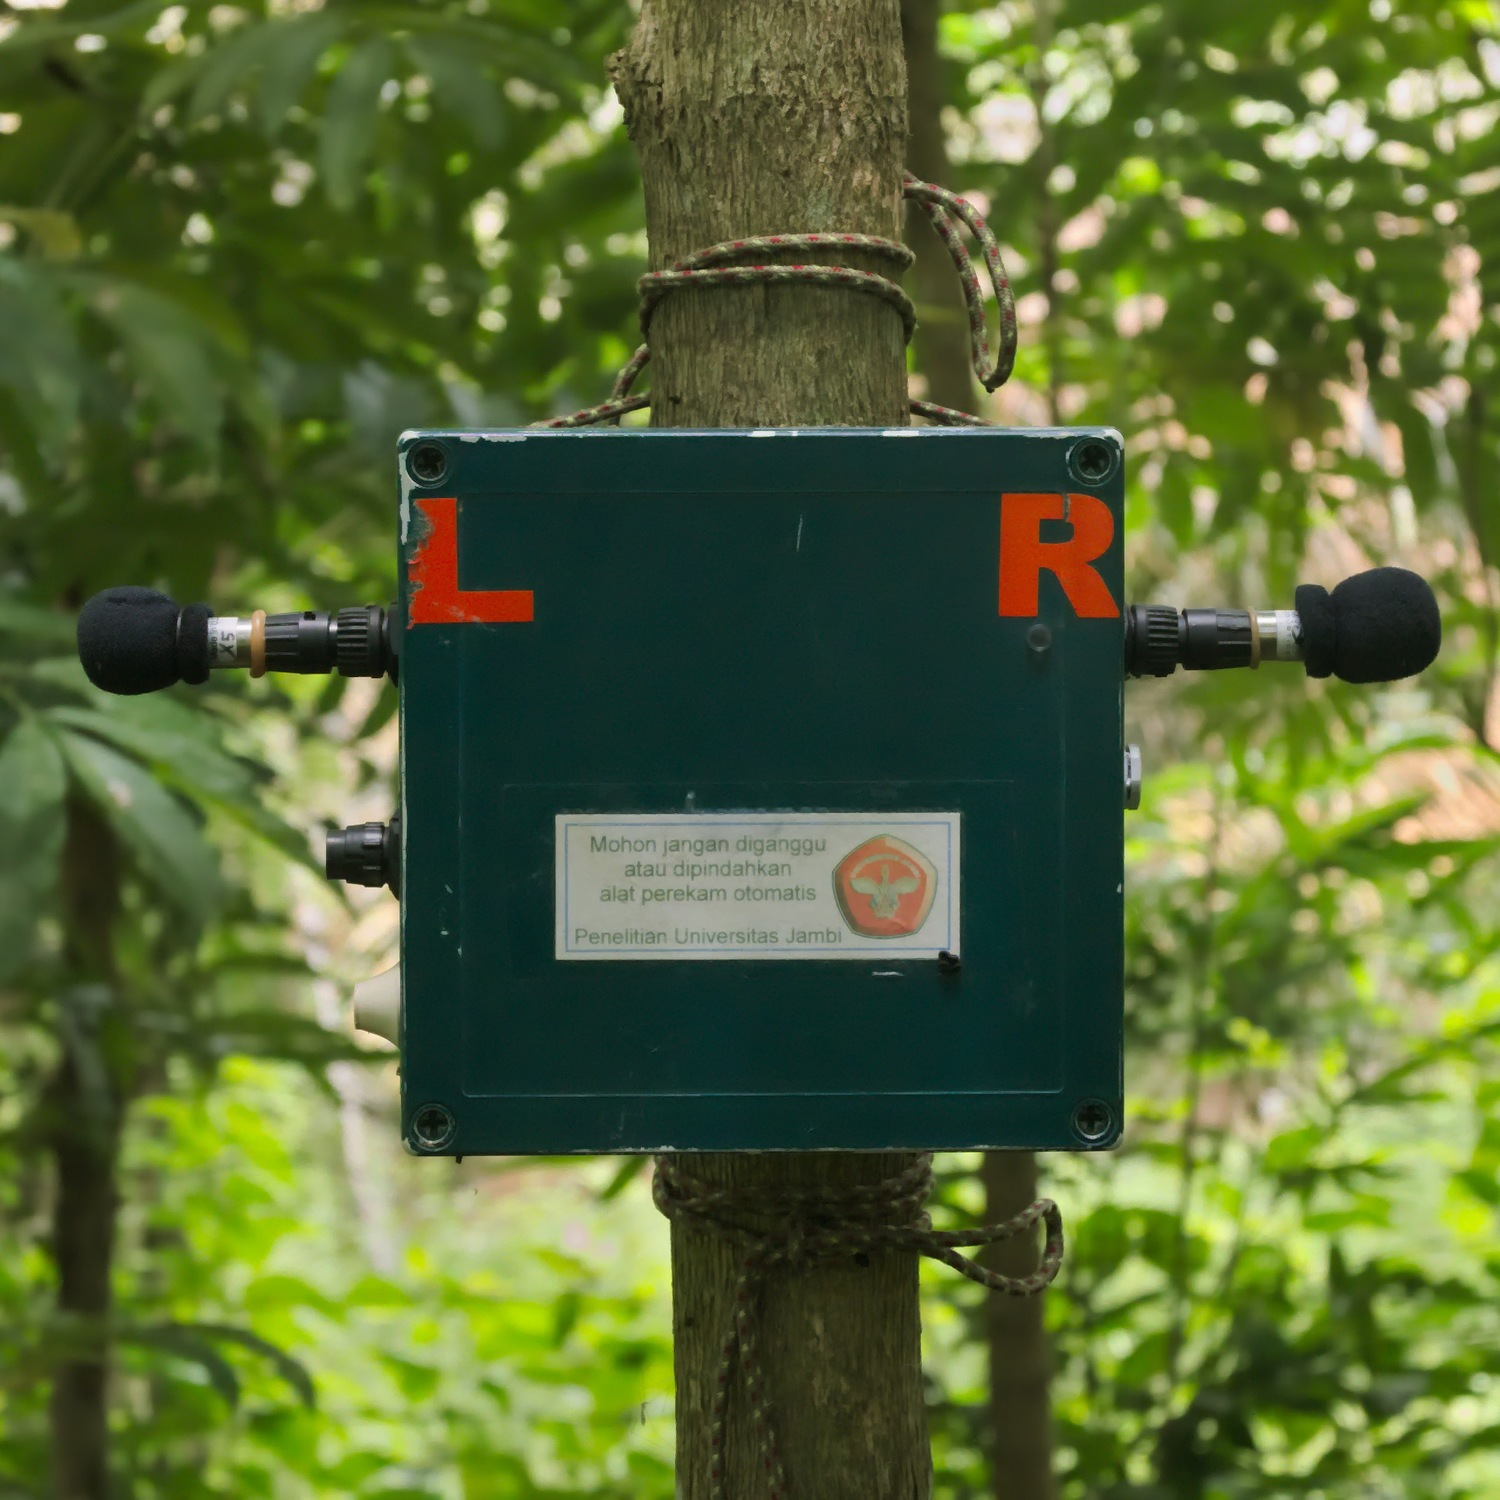 A programmable sound recorder is used in Jambi, Indonesia, to record biodiversity.